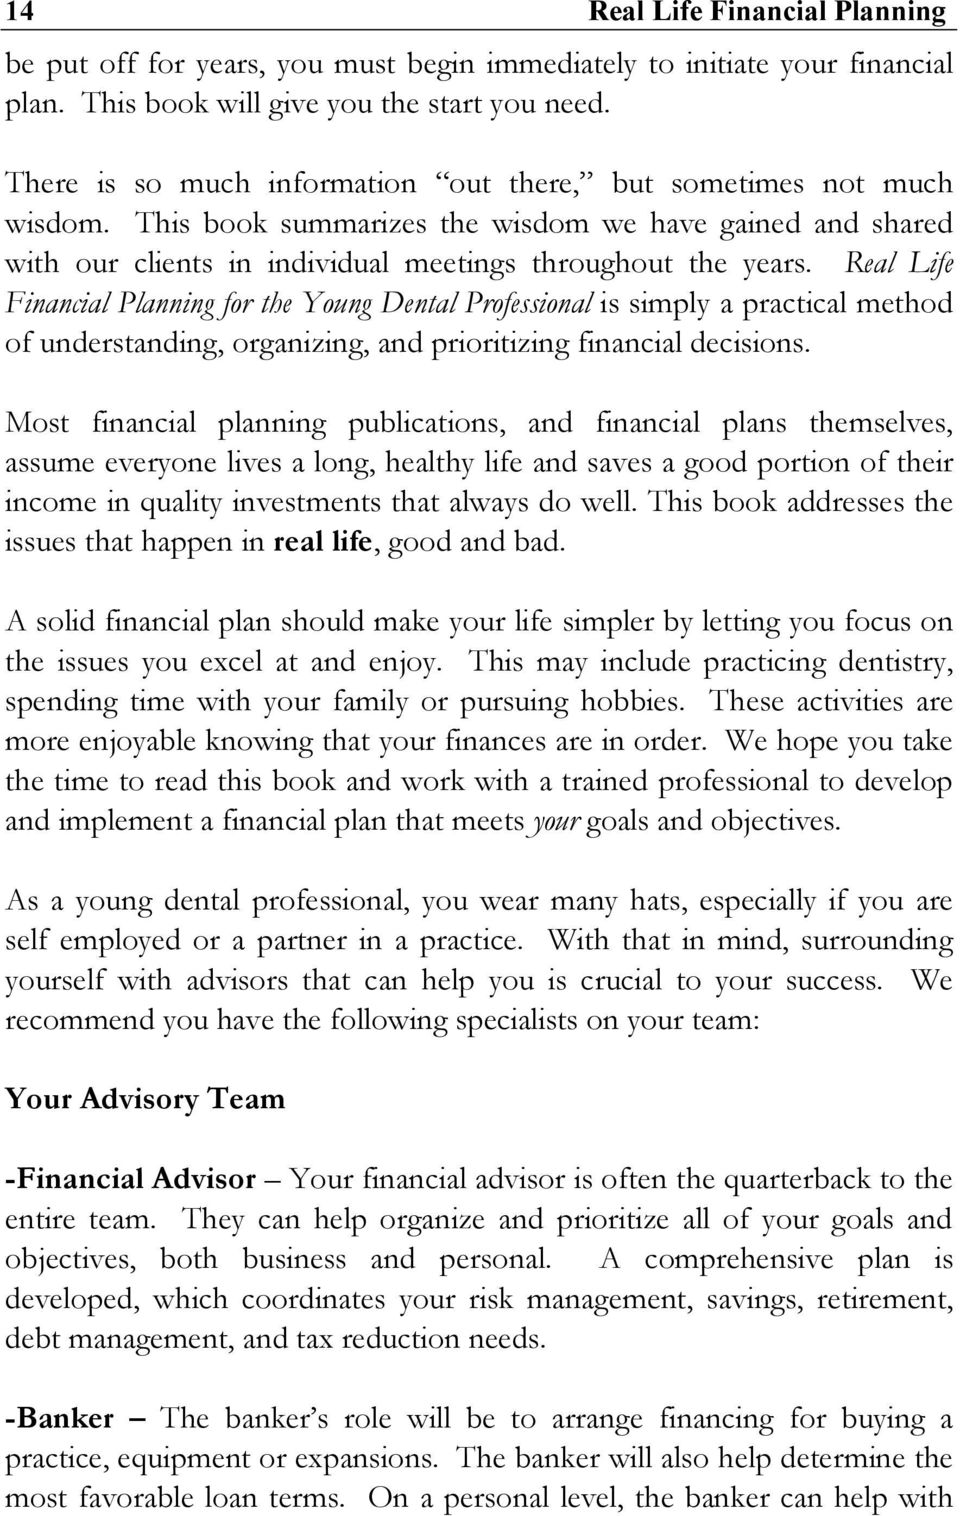 Real Life Financial Planning for the Young Dental Professional is simply a practical method of understanding, organizing, and prioritizing financial decisions.